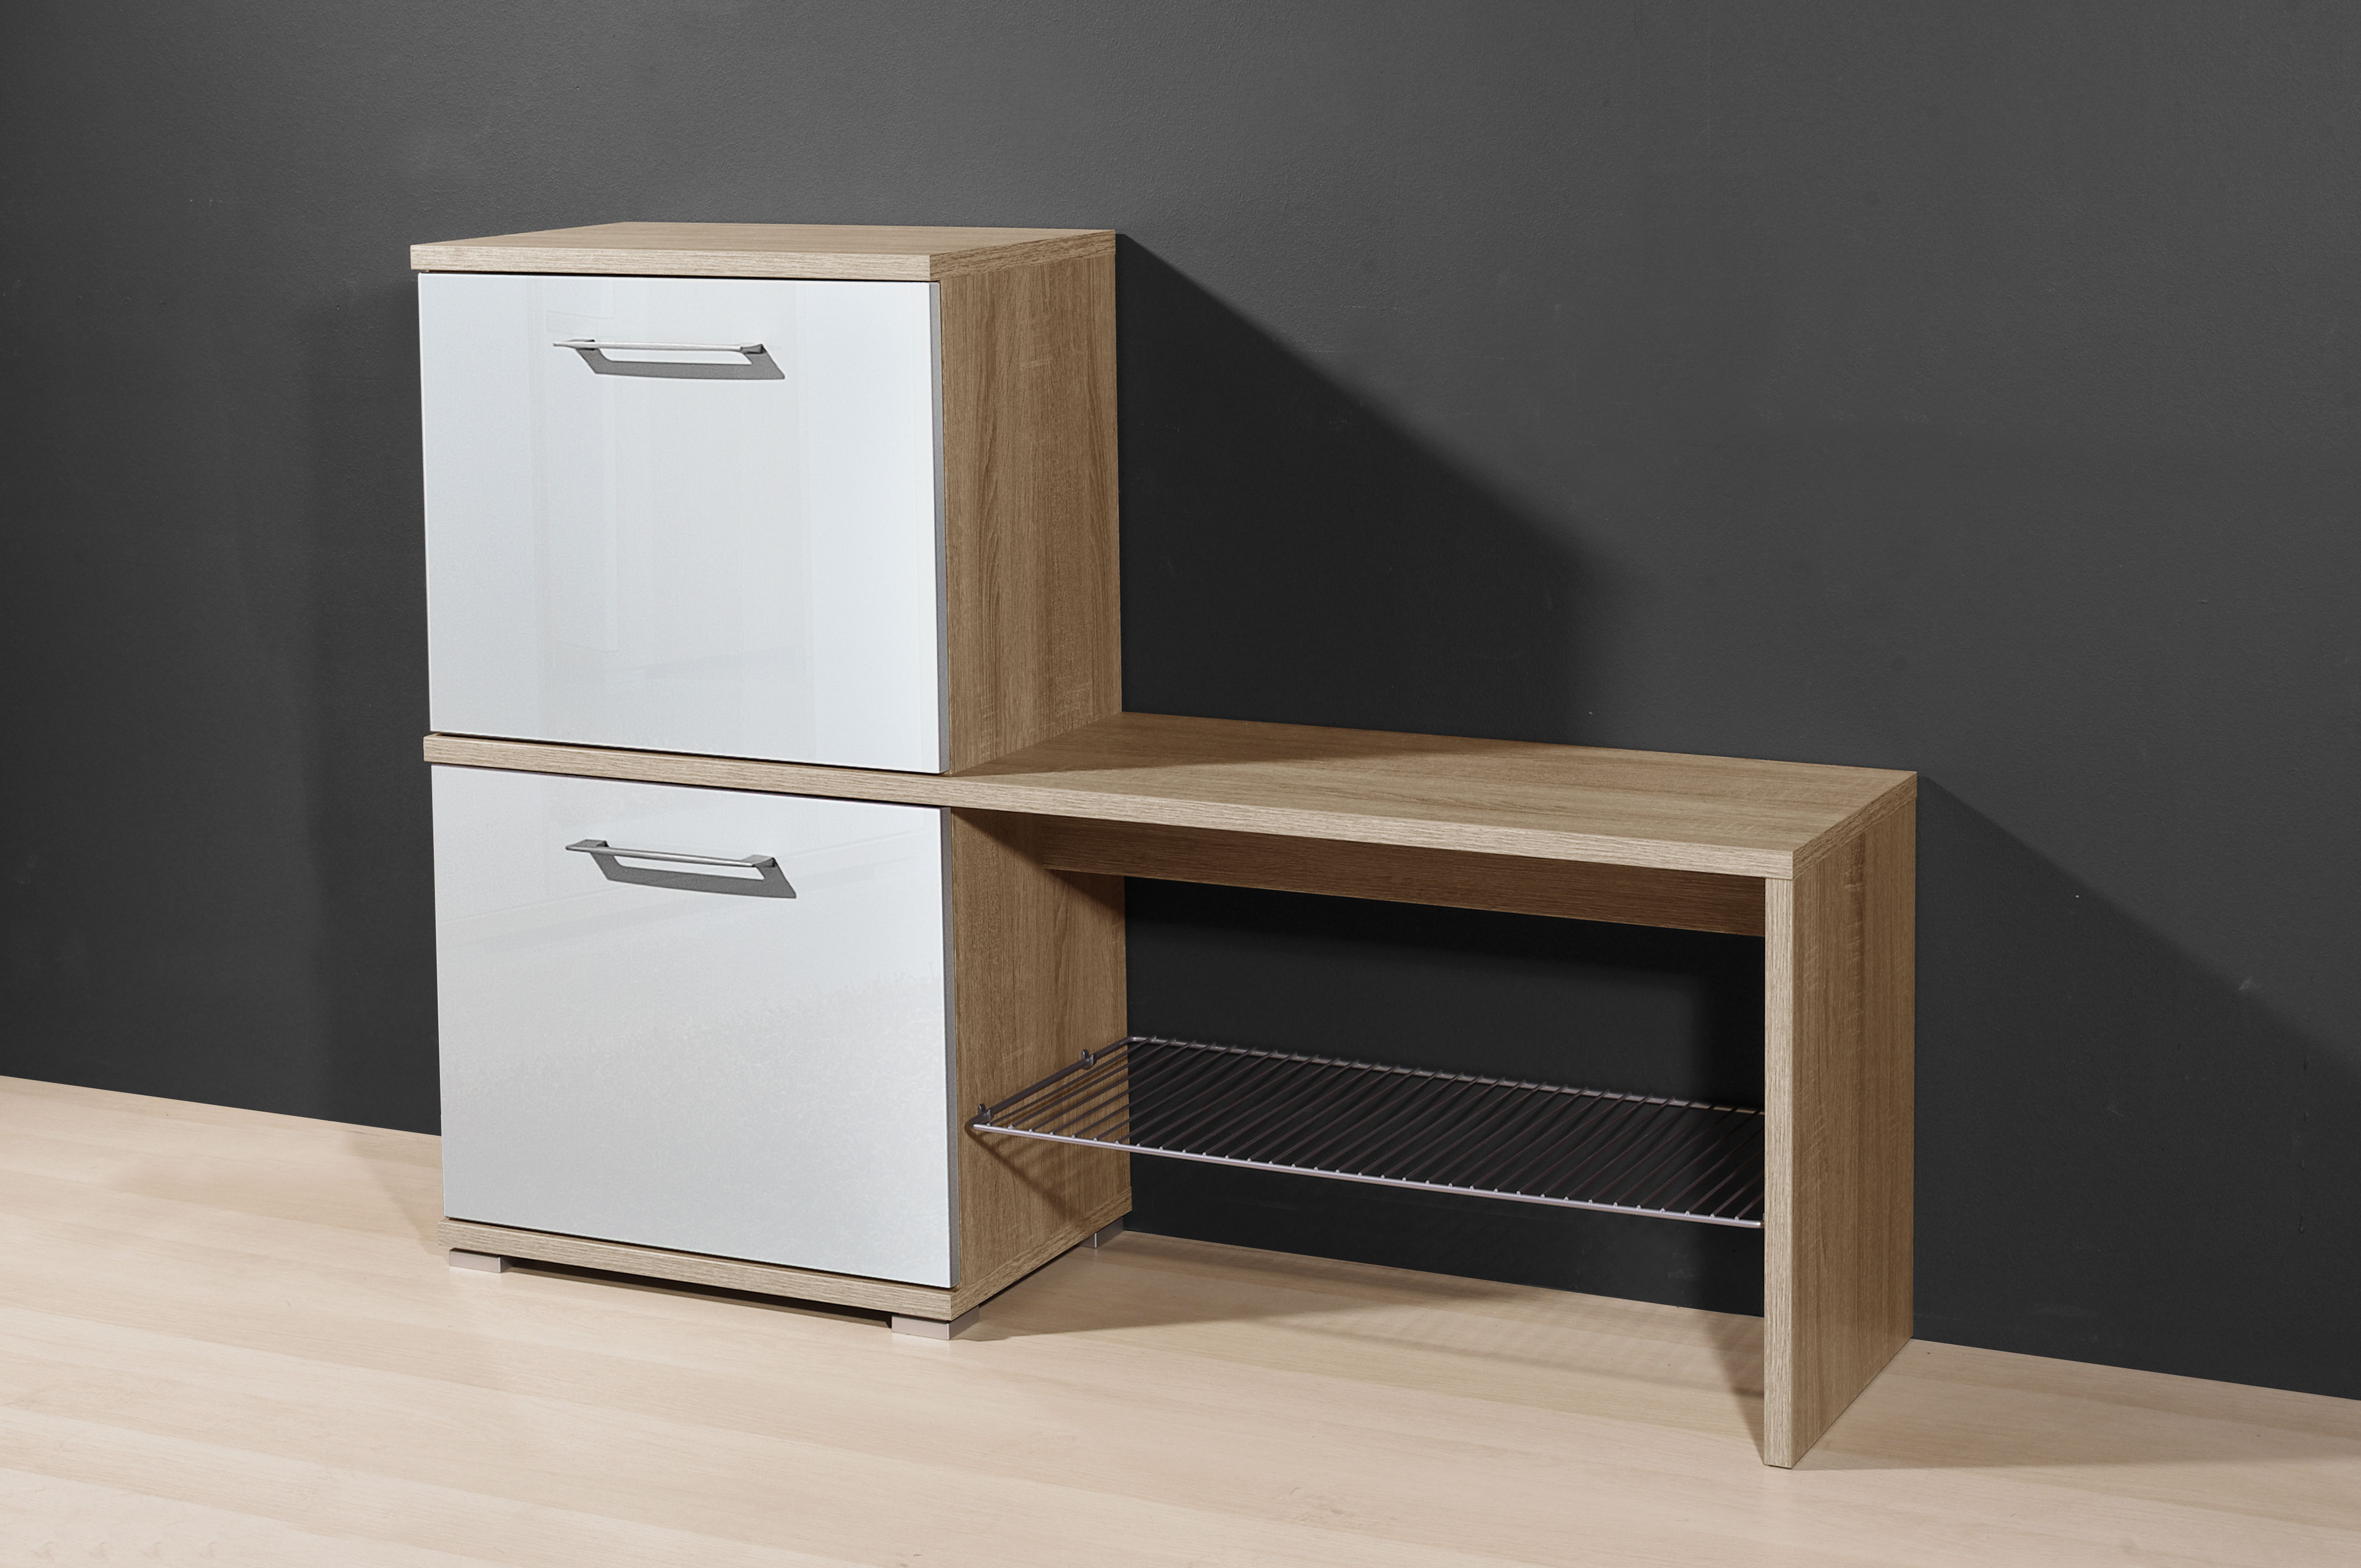 schuhschrank mit schuhbank schuhkommode mod gm536 sonoma eiche weiss hochglanz ebay. Black Bedroom Furniture Sets. Home Design Ideas